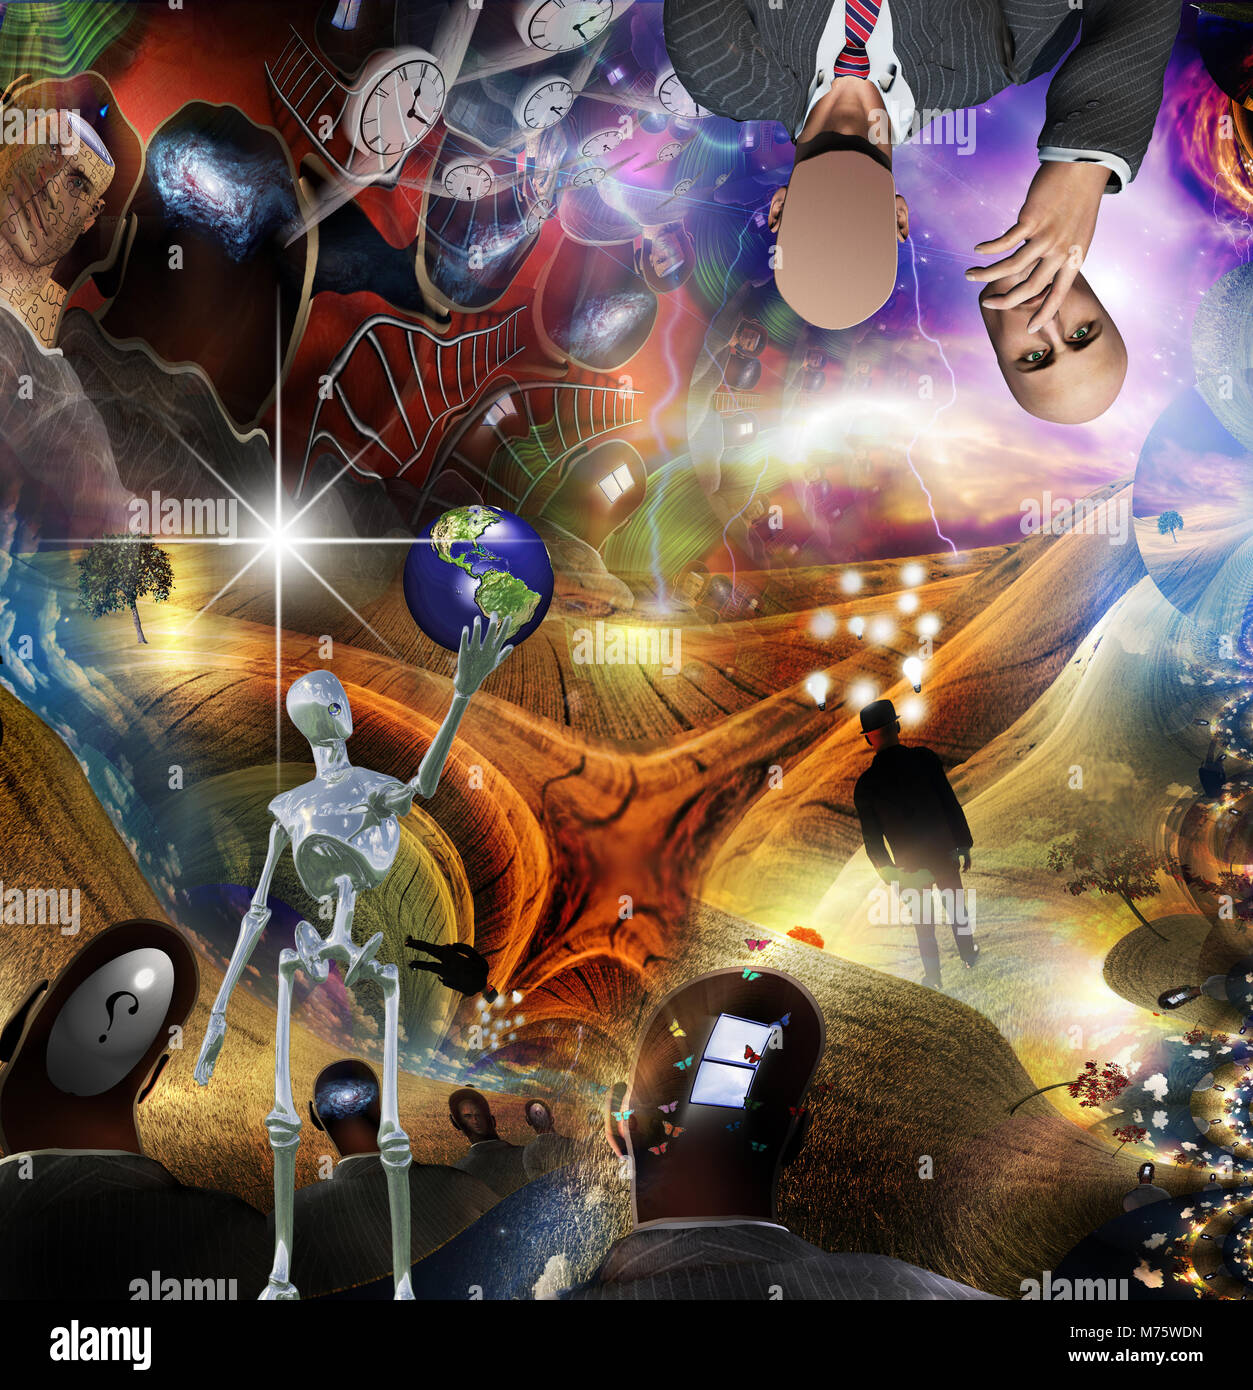 Visionary Abstract. Alien robot holds planet Earth. Winged clocks represents flow of time. - Stock Image